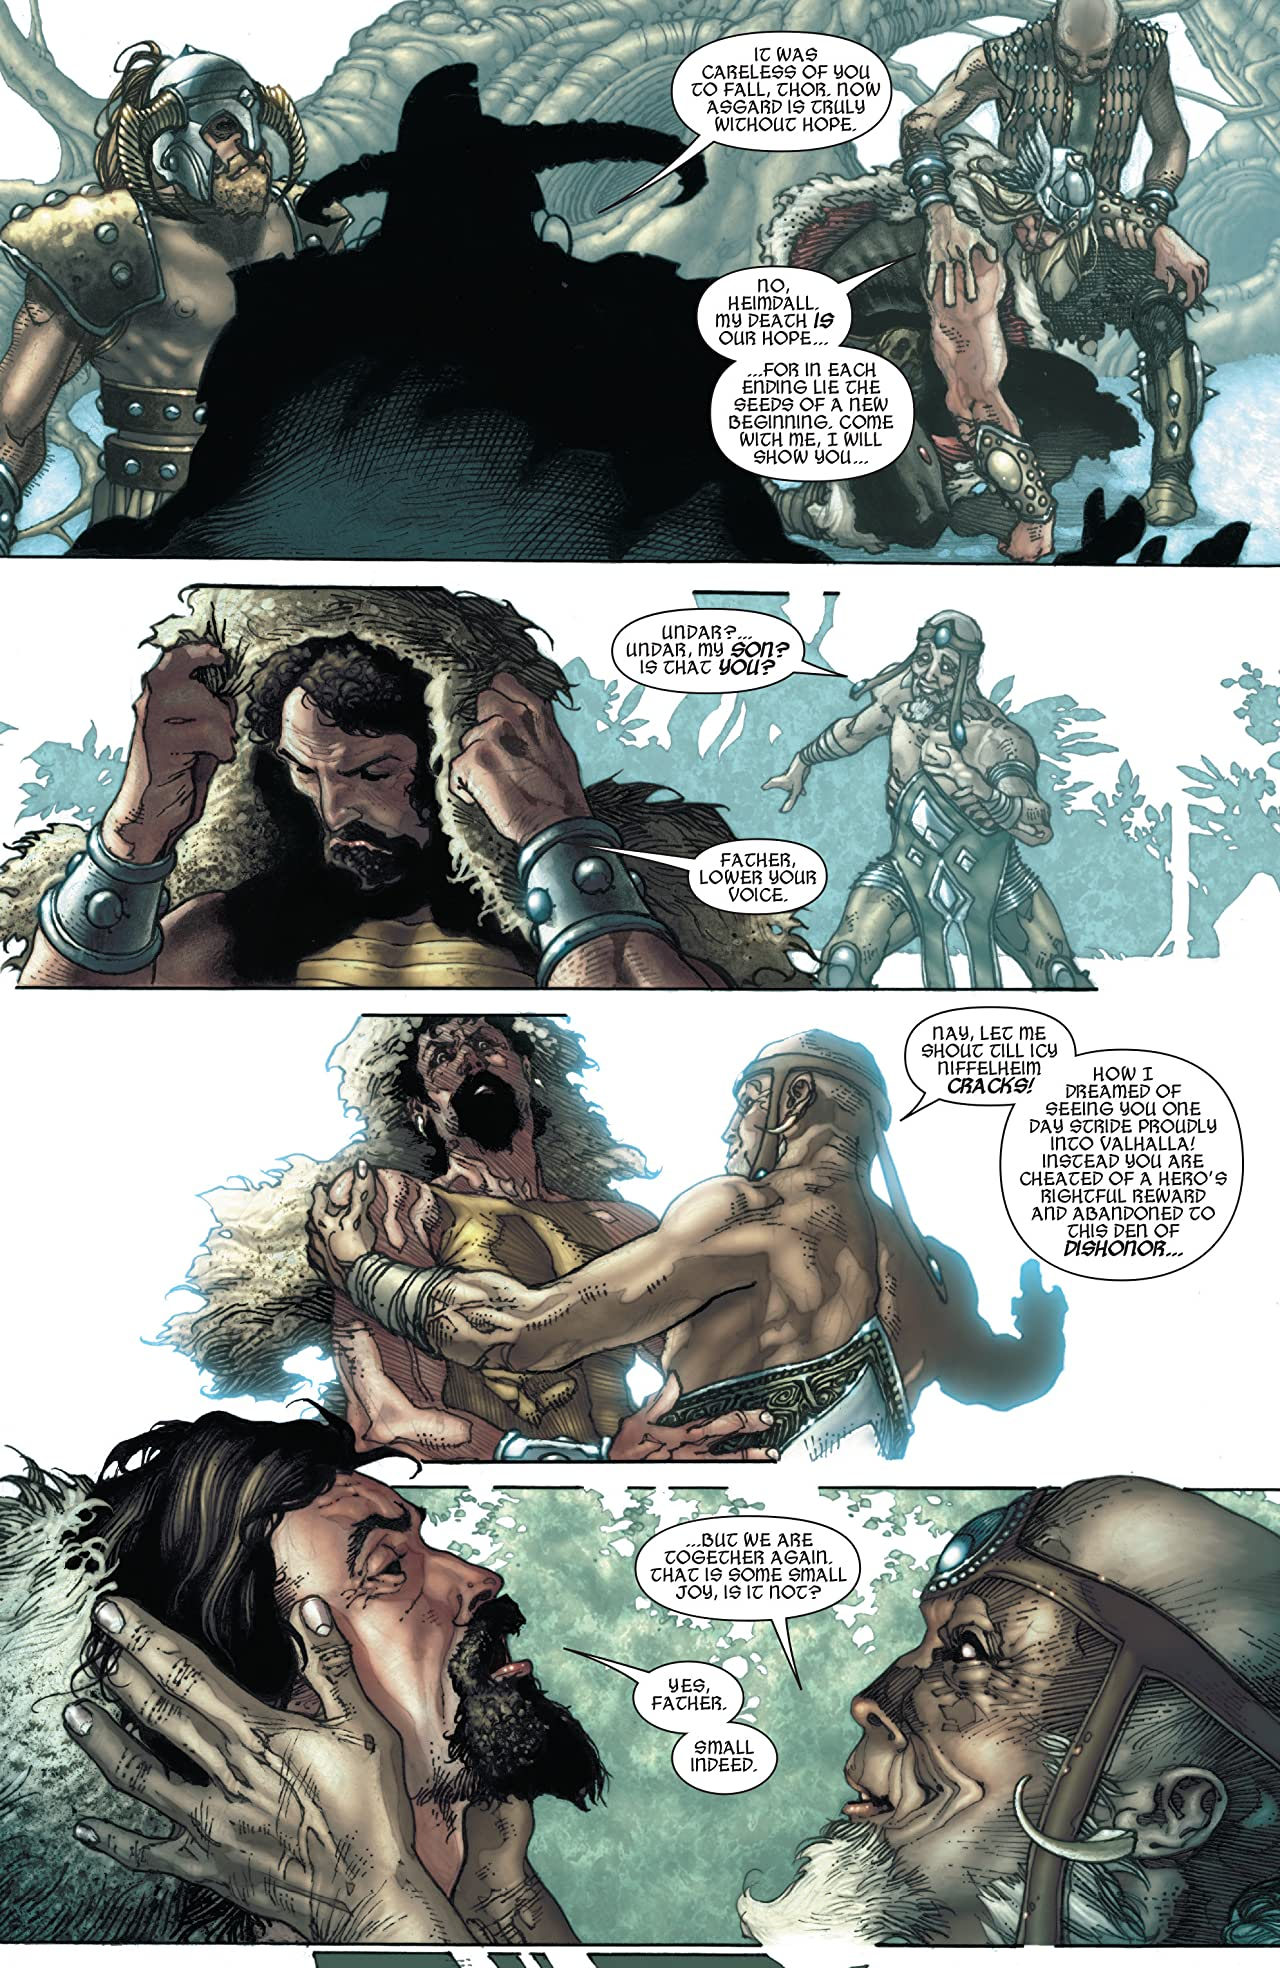 Thor: For Asgard (2010-2011) #6 (of 6)